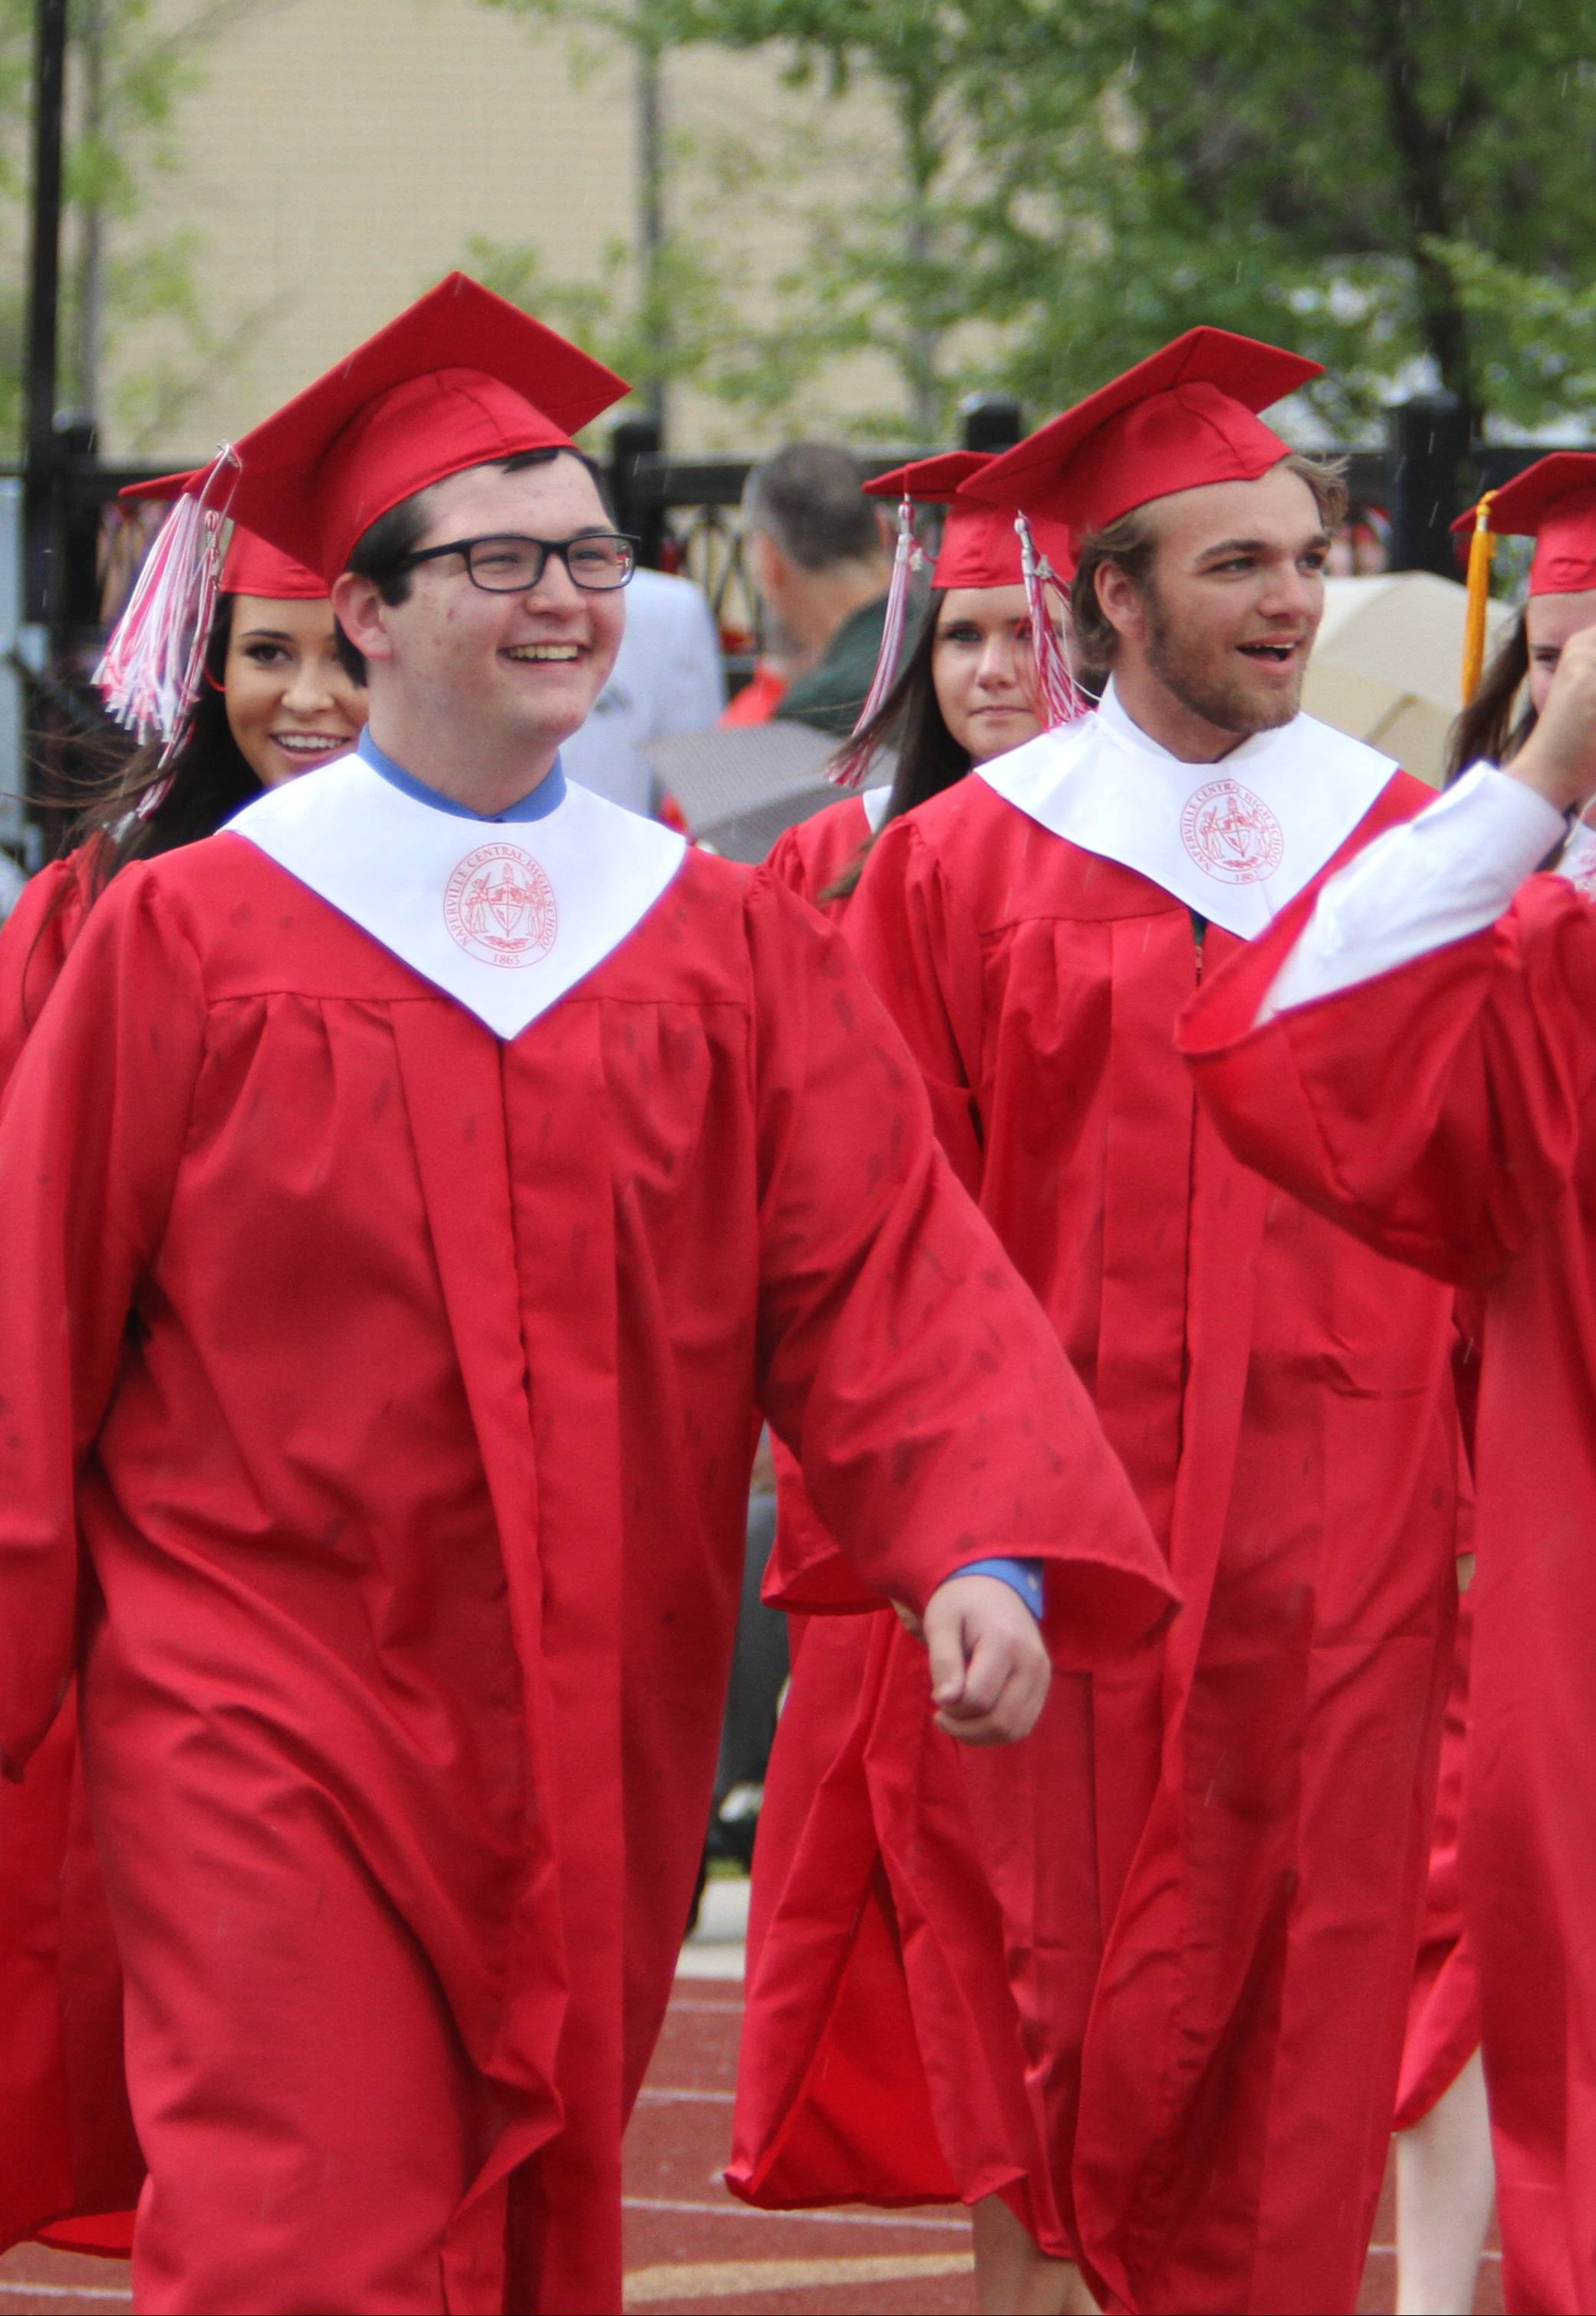 Naperville Central High School students prepared for their graduation Tuesday,  May 27.  However, after the students filed onto the field and the national anthem was sung, the proceedings were cancelled due to rain and  lightning and rescheduled for Wednesday, May 28.